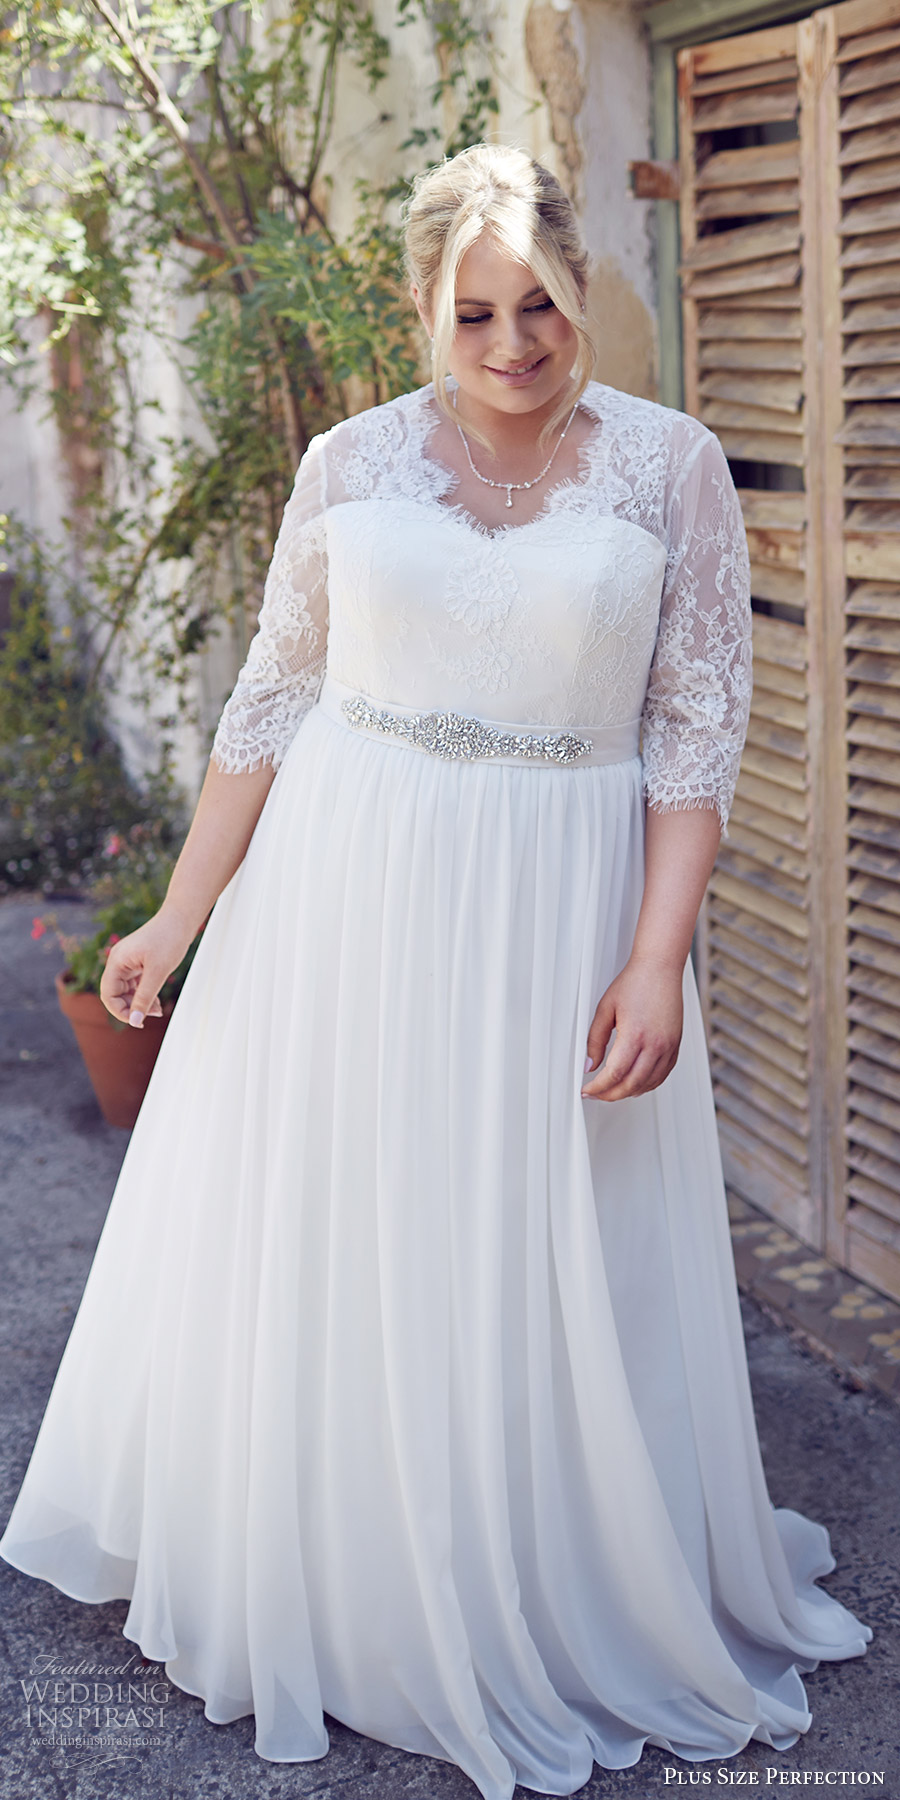 Plus size perfection wedding dresses it s a love story for Plus size wedding dresses with color and sleeves